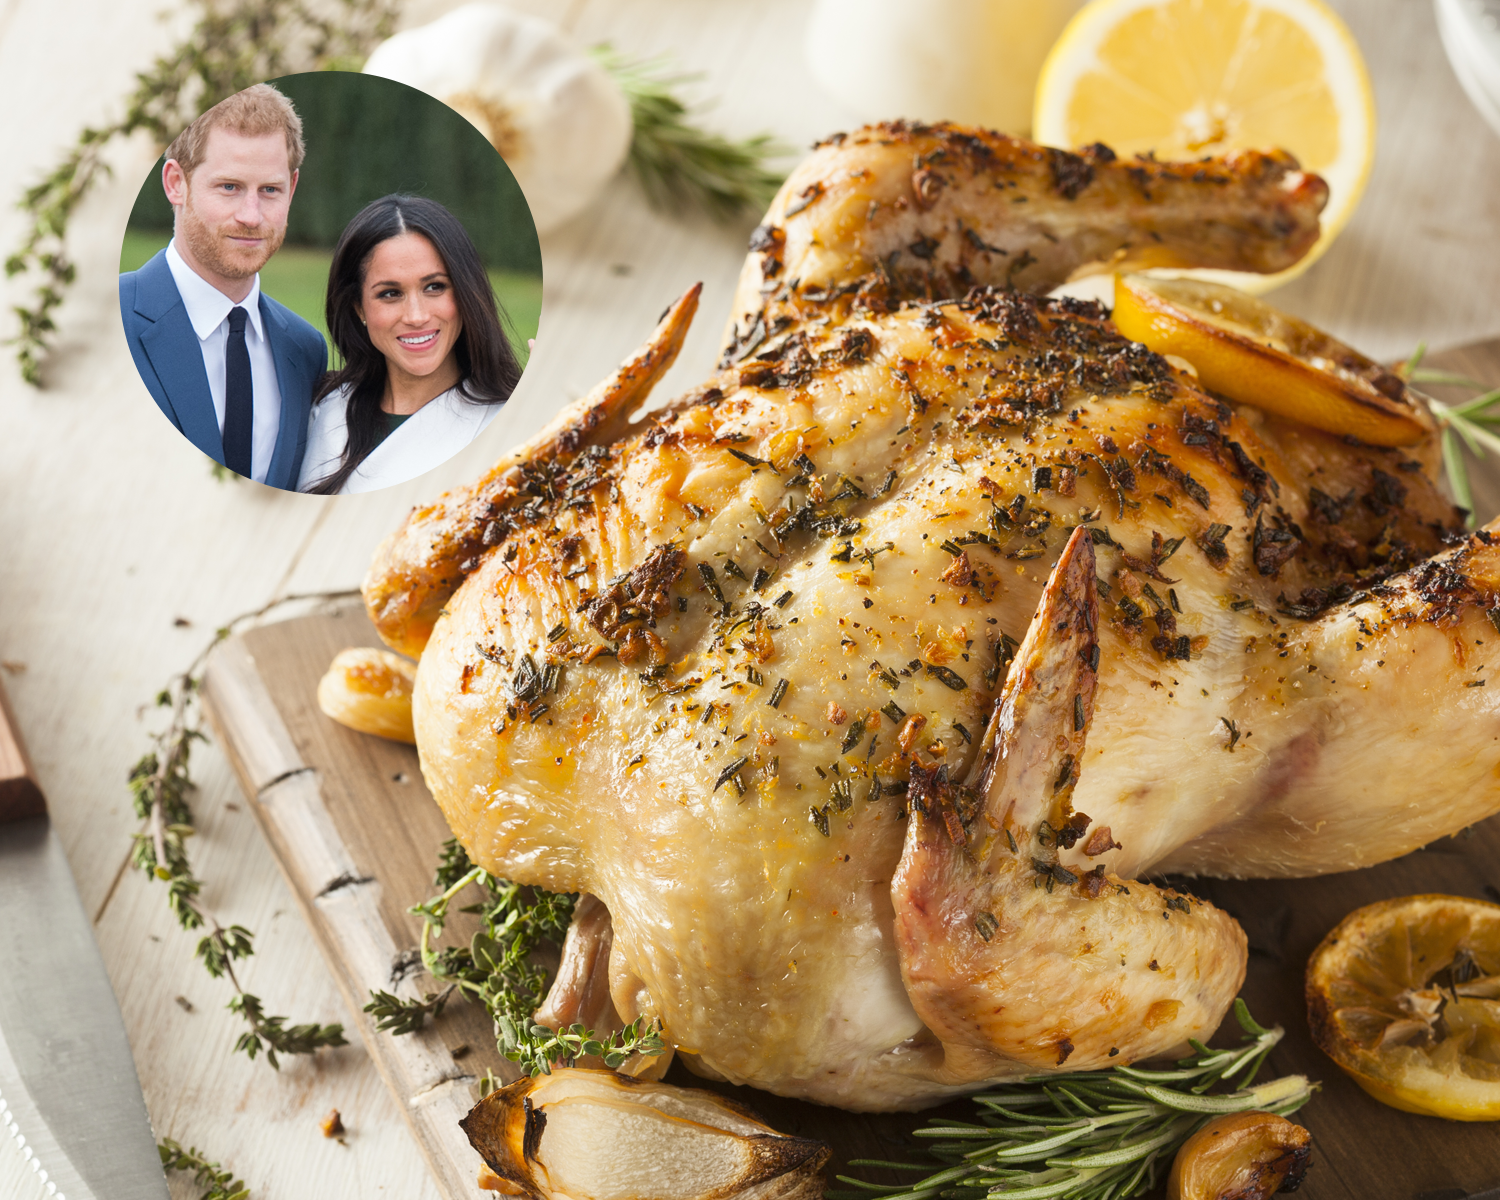 Meghan Markle And Prince Harry S Roast Chicken Recipe